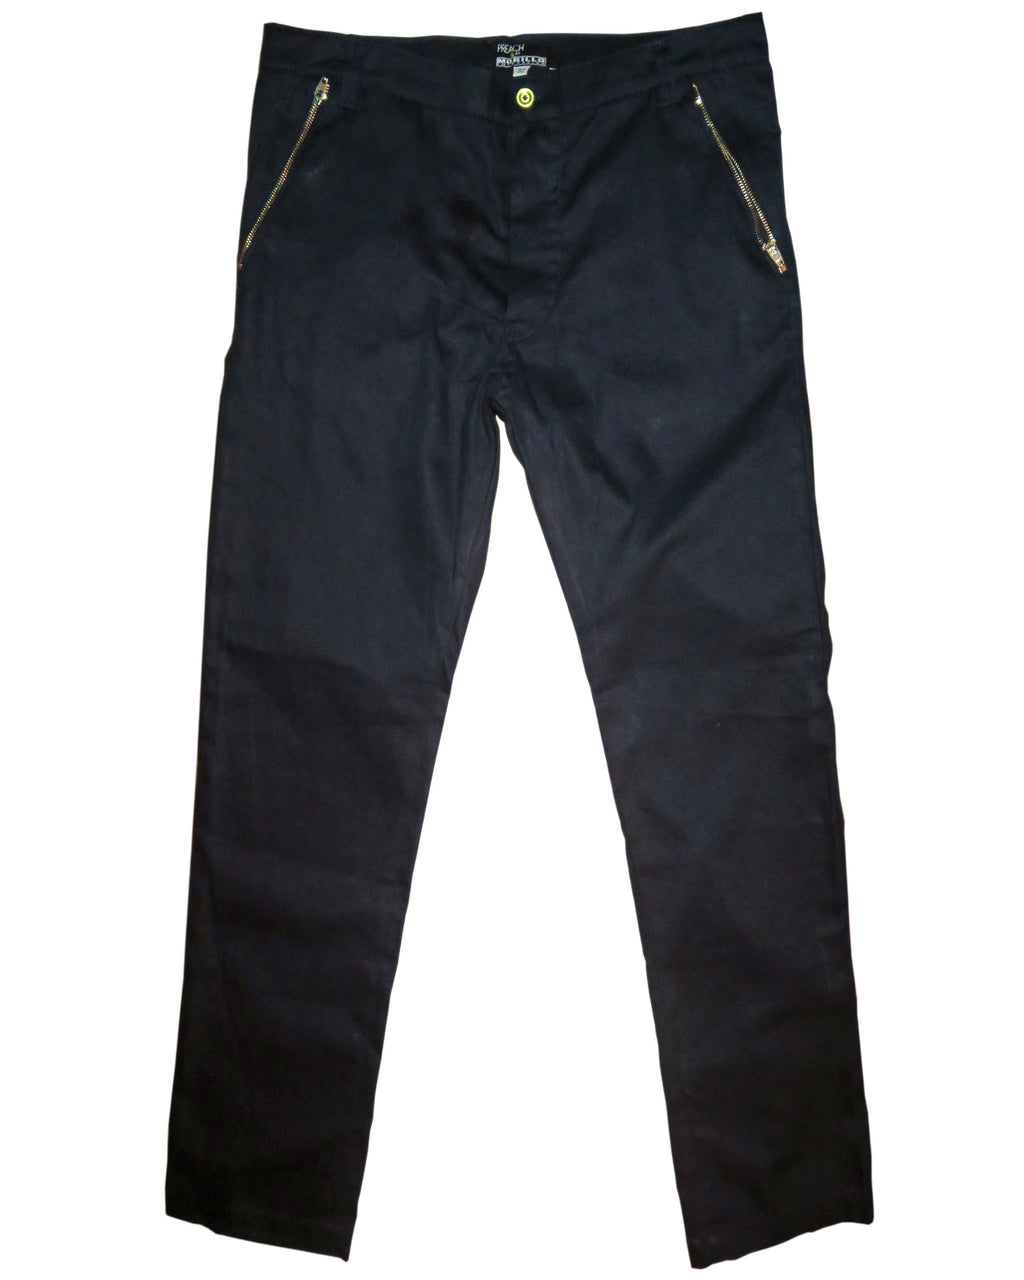 Slim Fitted Cotton Twill Zipped Pants Pants - MORILLO ENTERPRISE